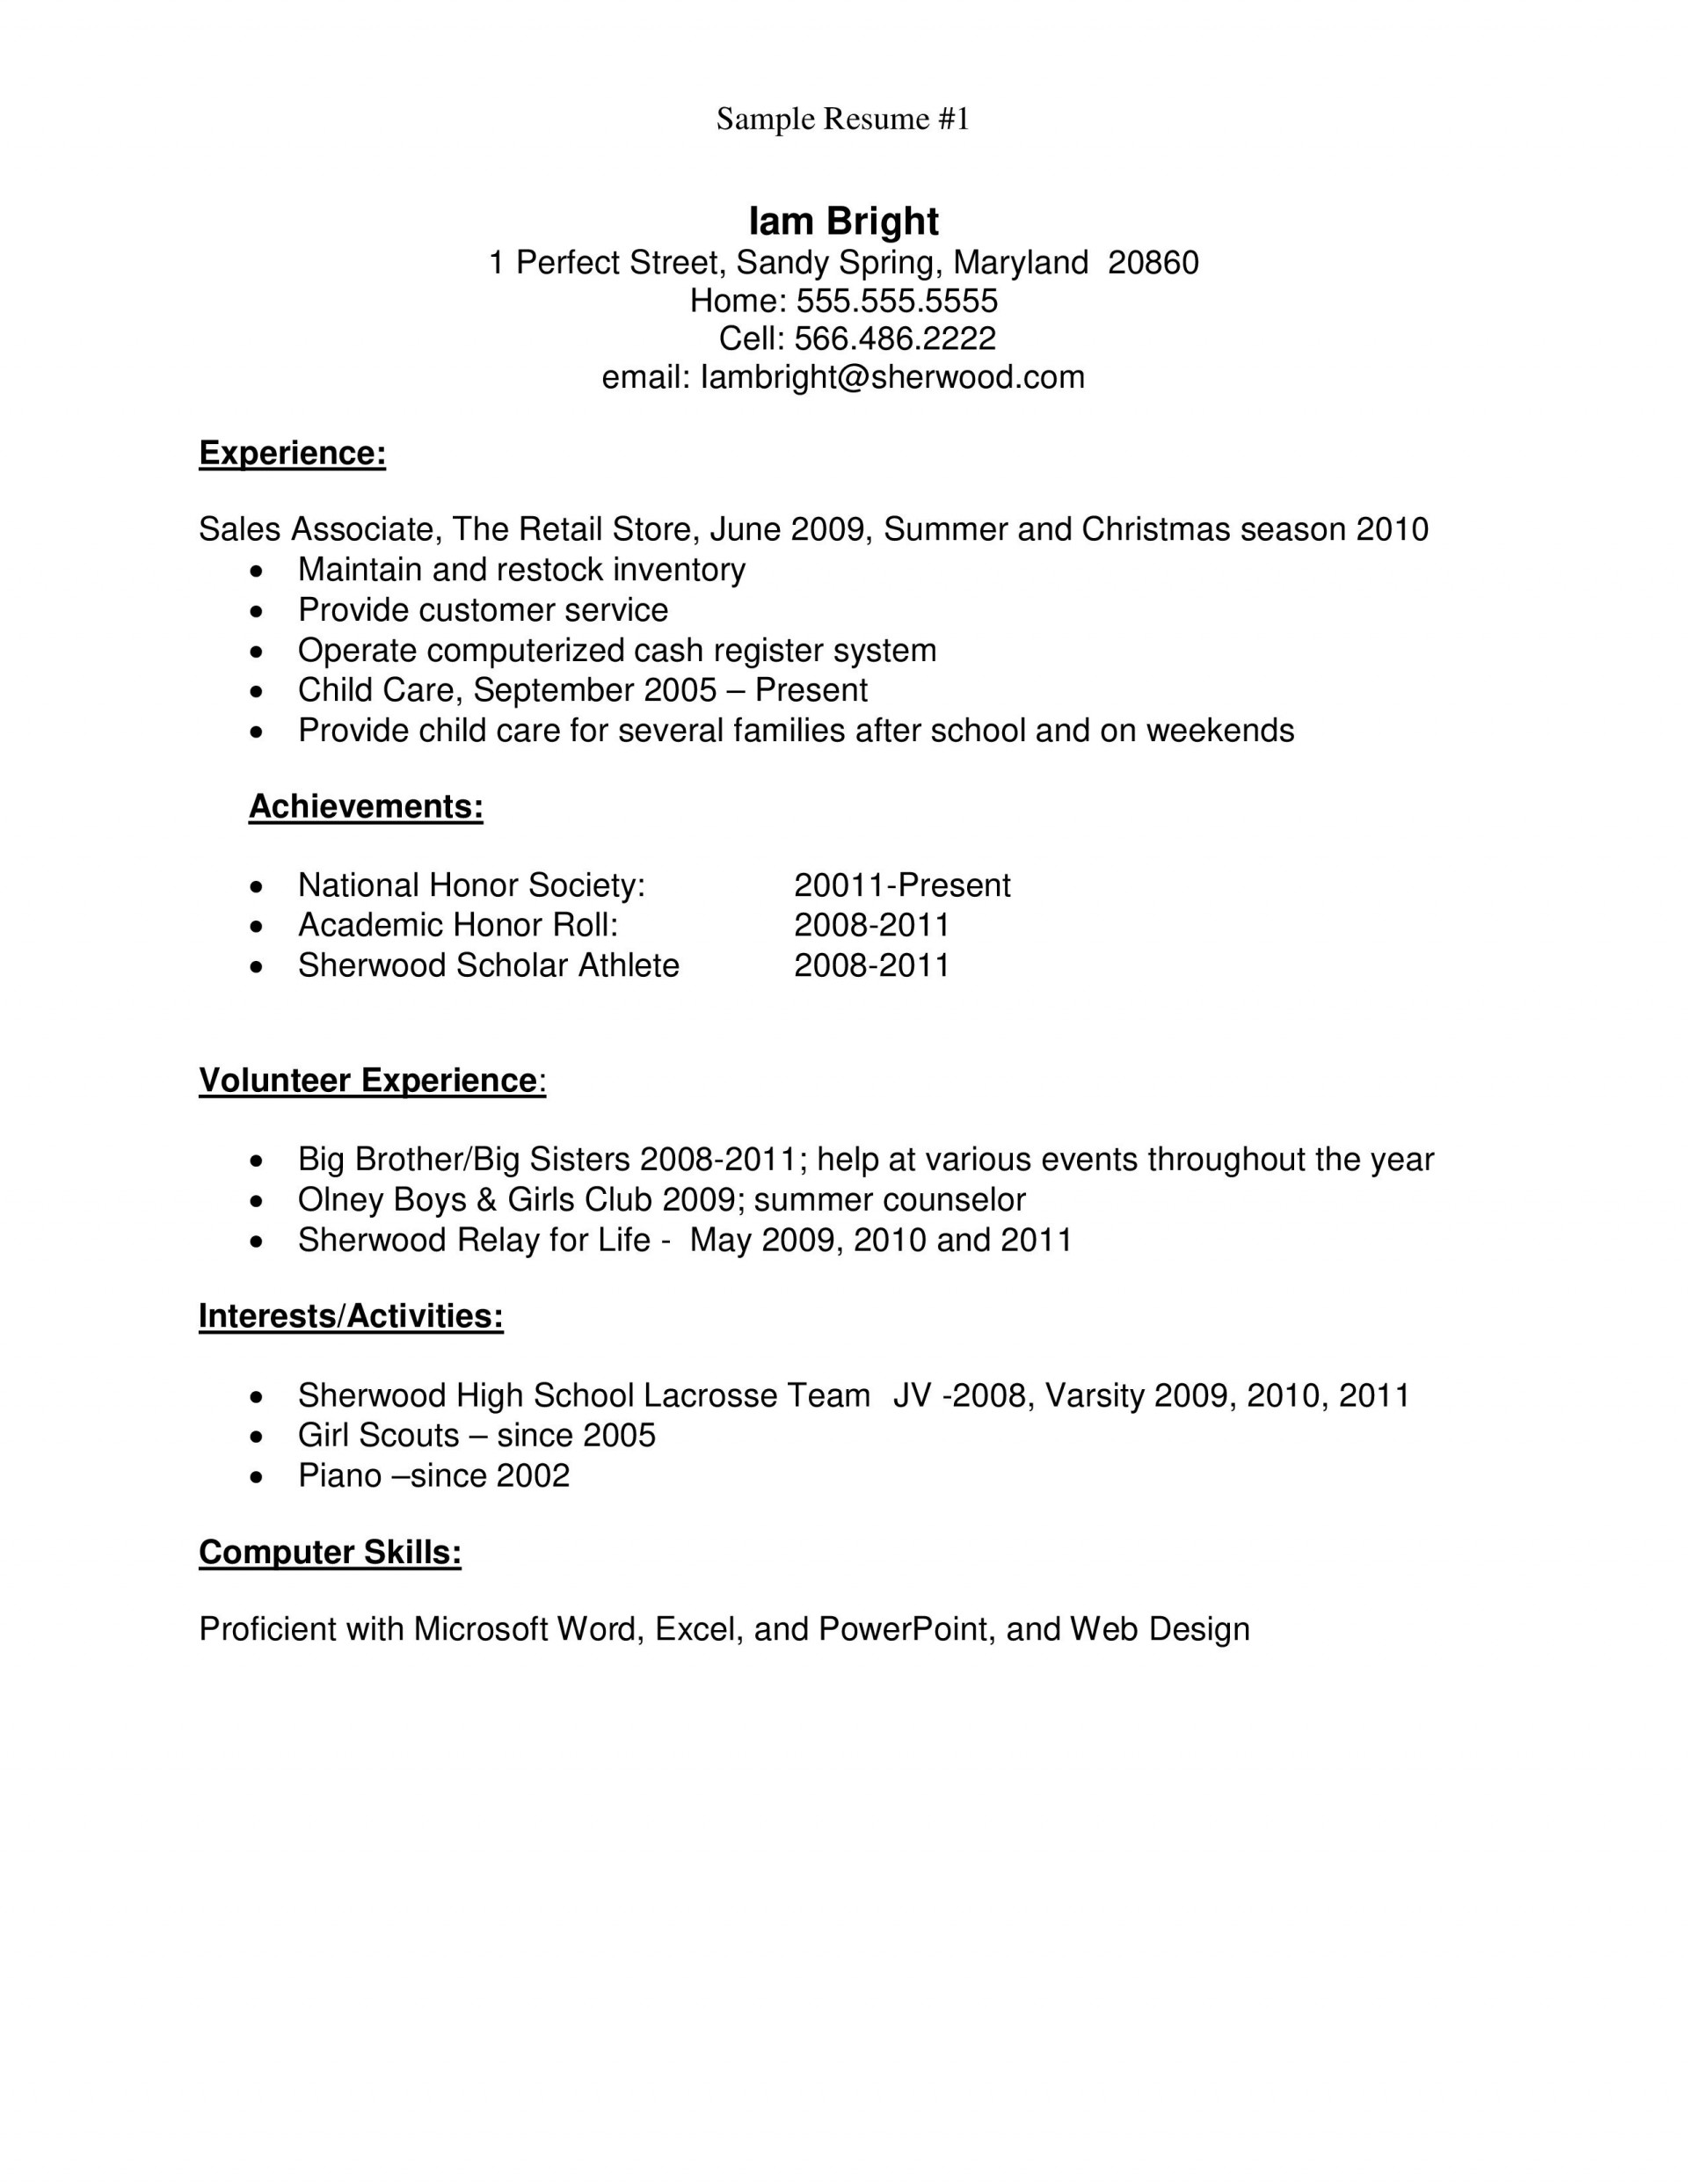 resume template high school students addictionary first job fascinating templates image Resume First Job Resume Template High School